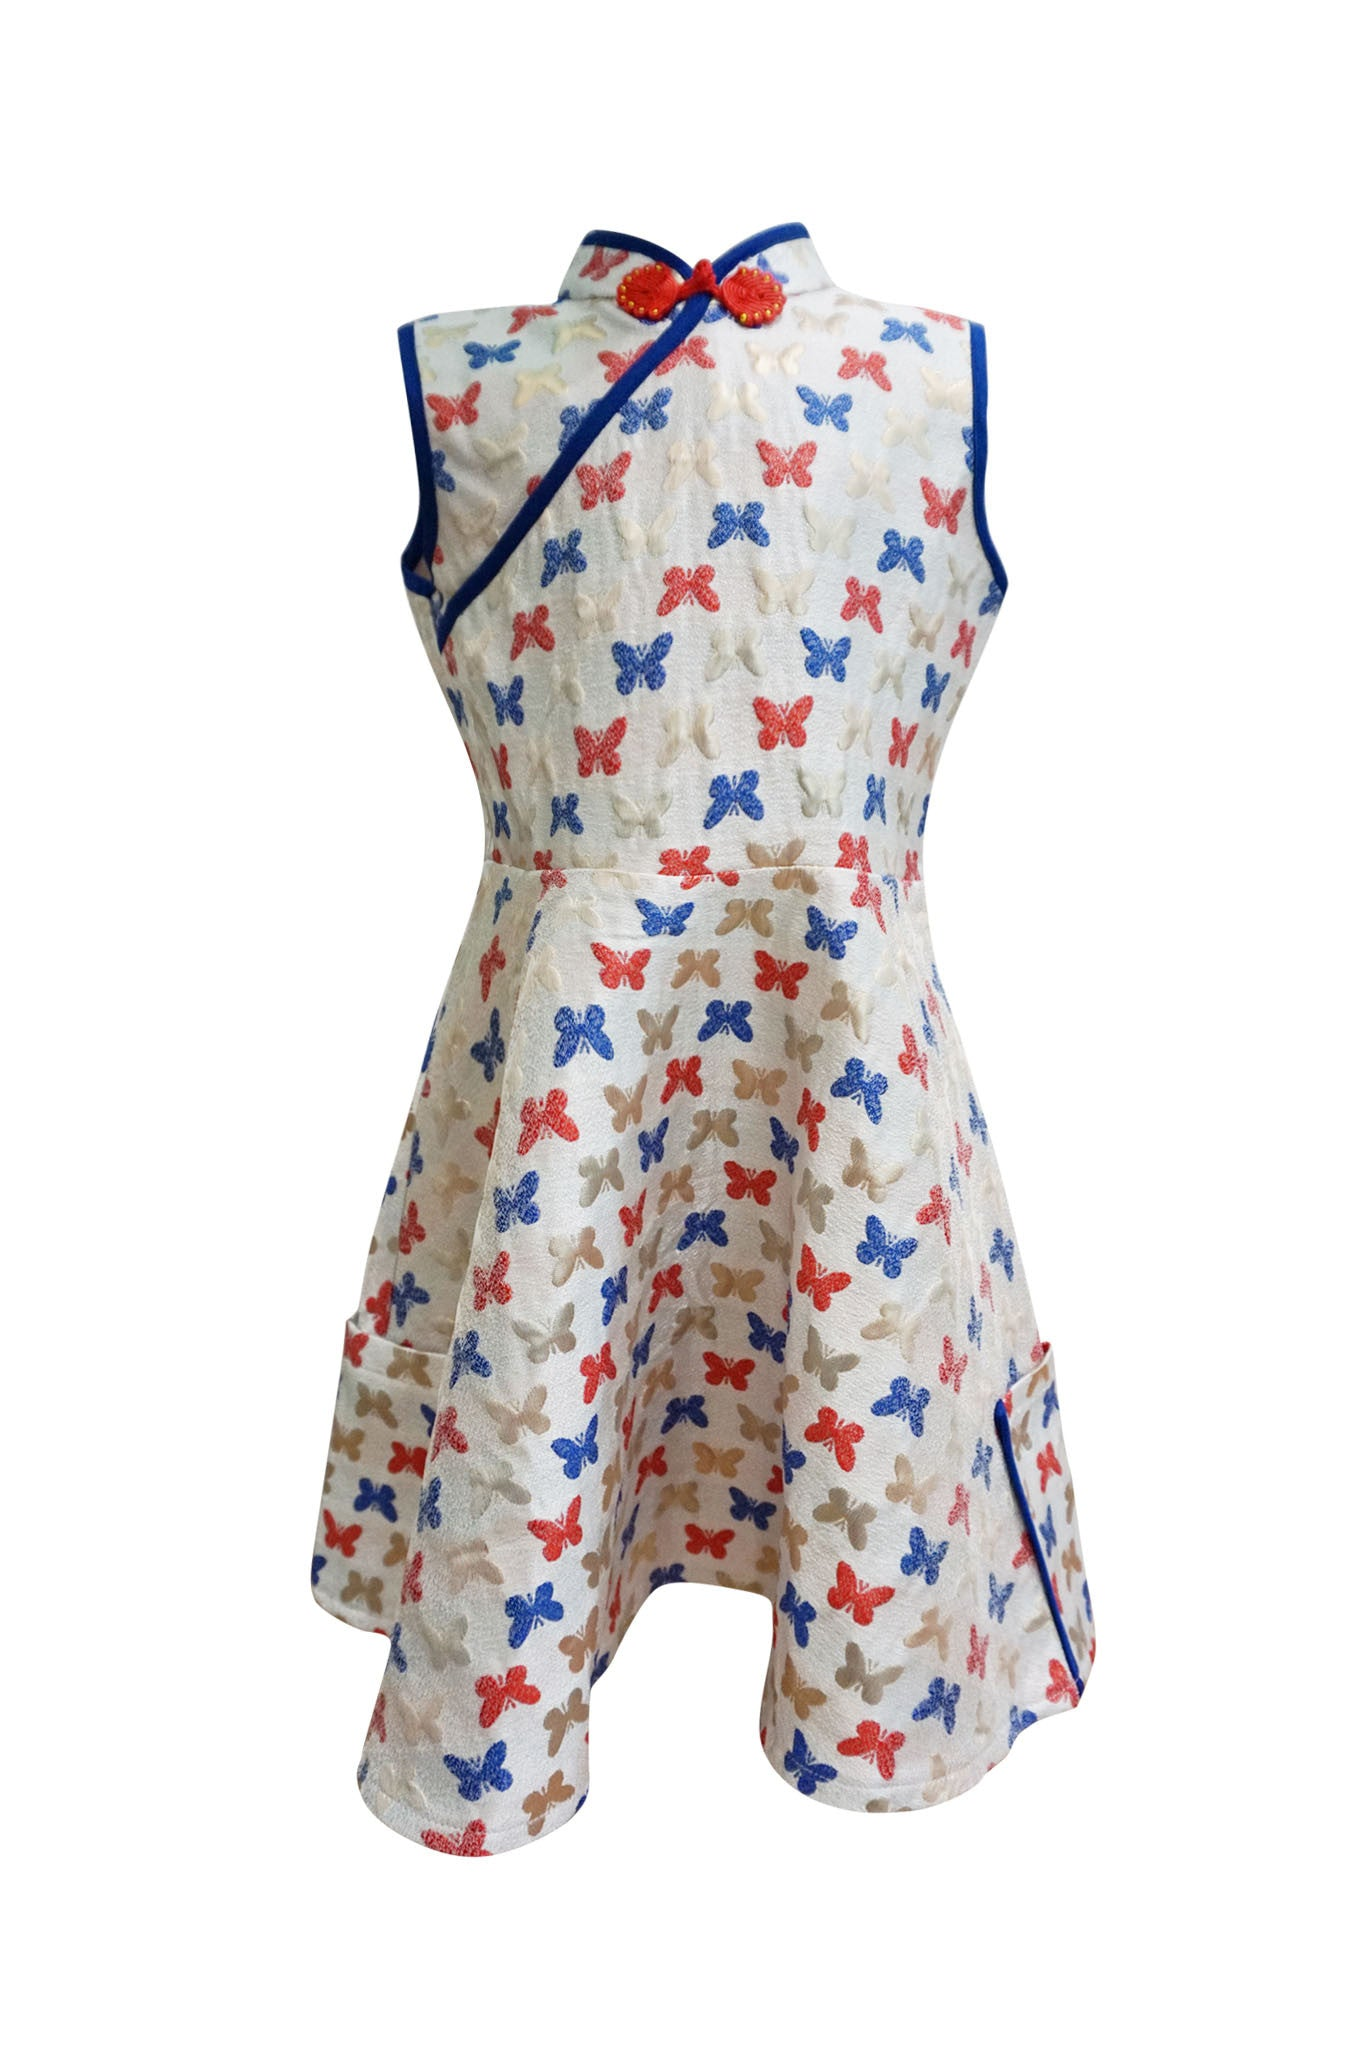 Butterfly Embroidered Cheongsam Dress - Kids (Sample Piece)